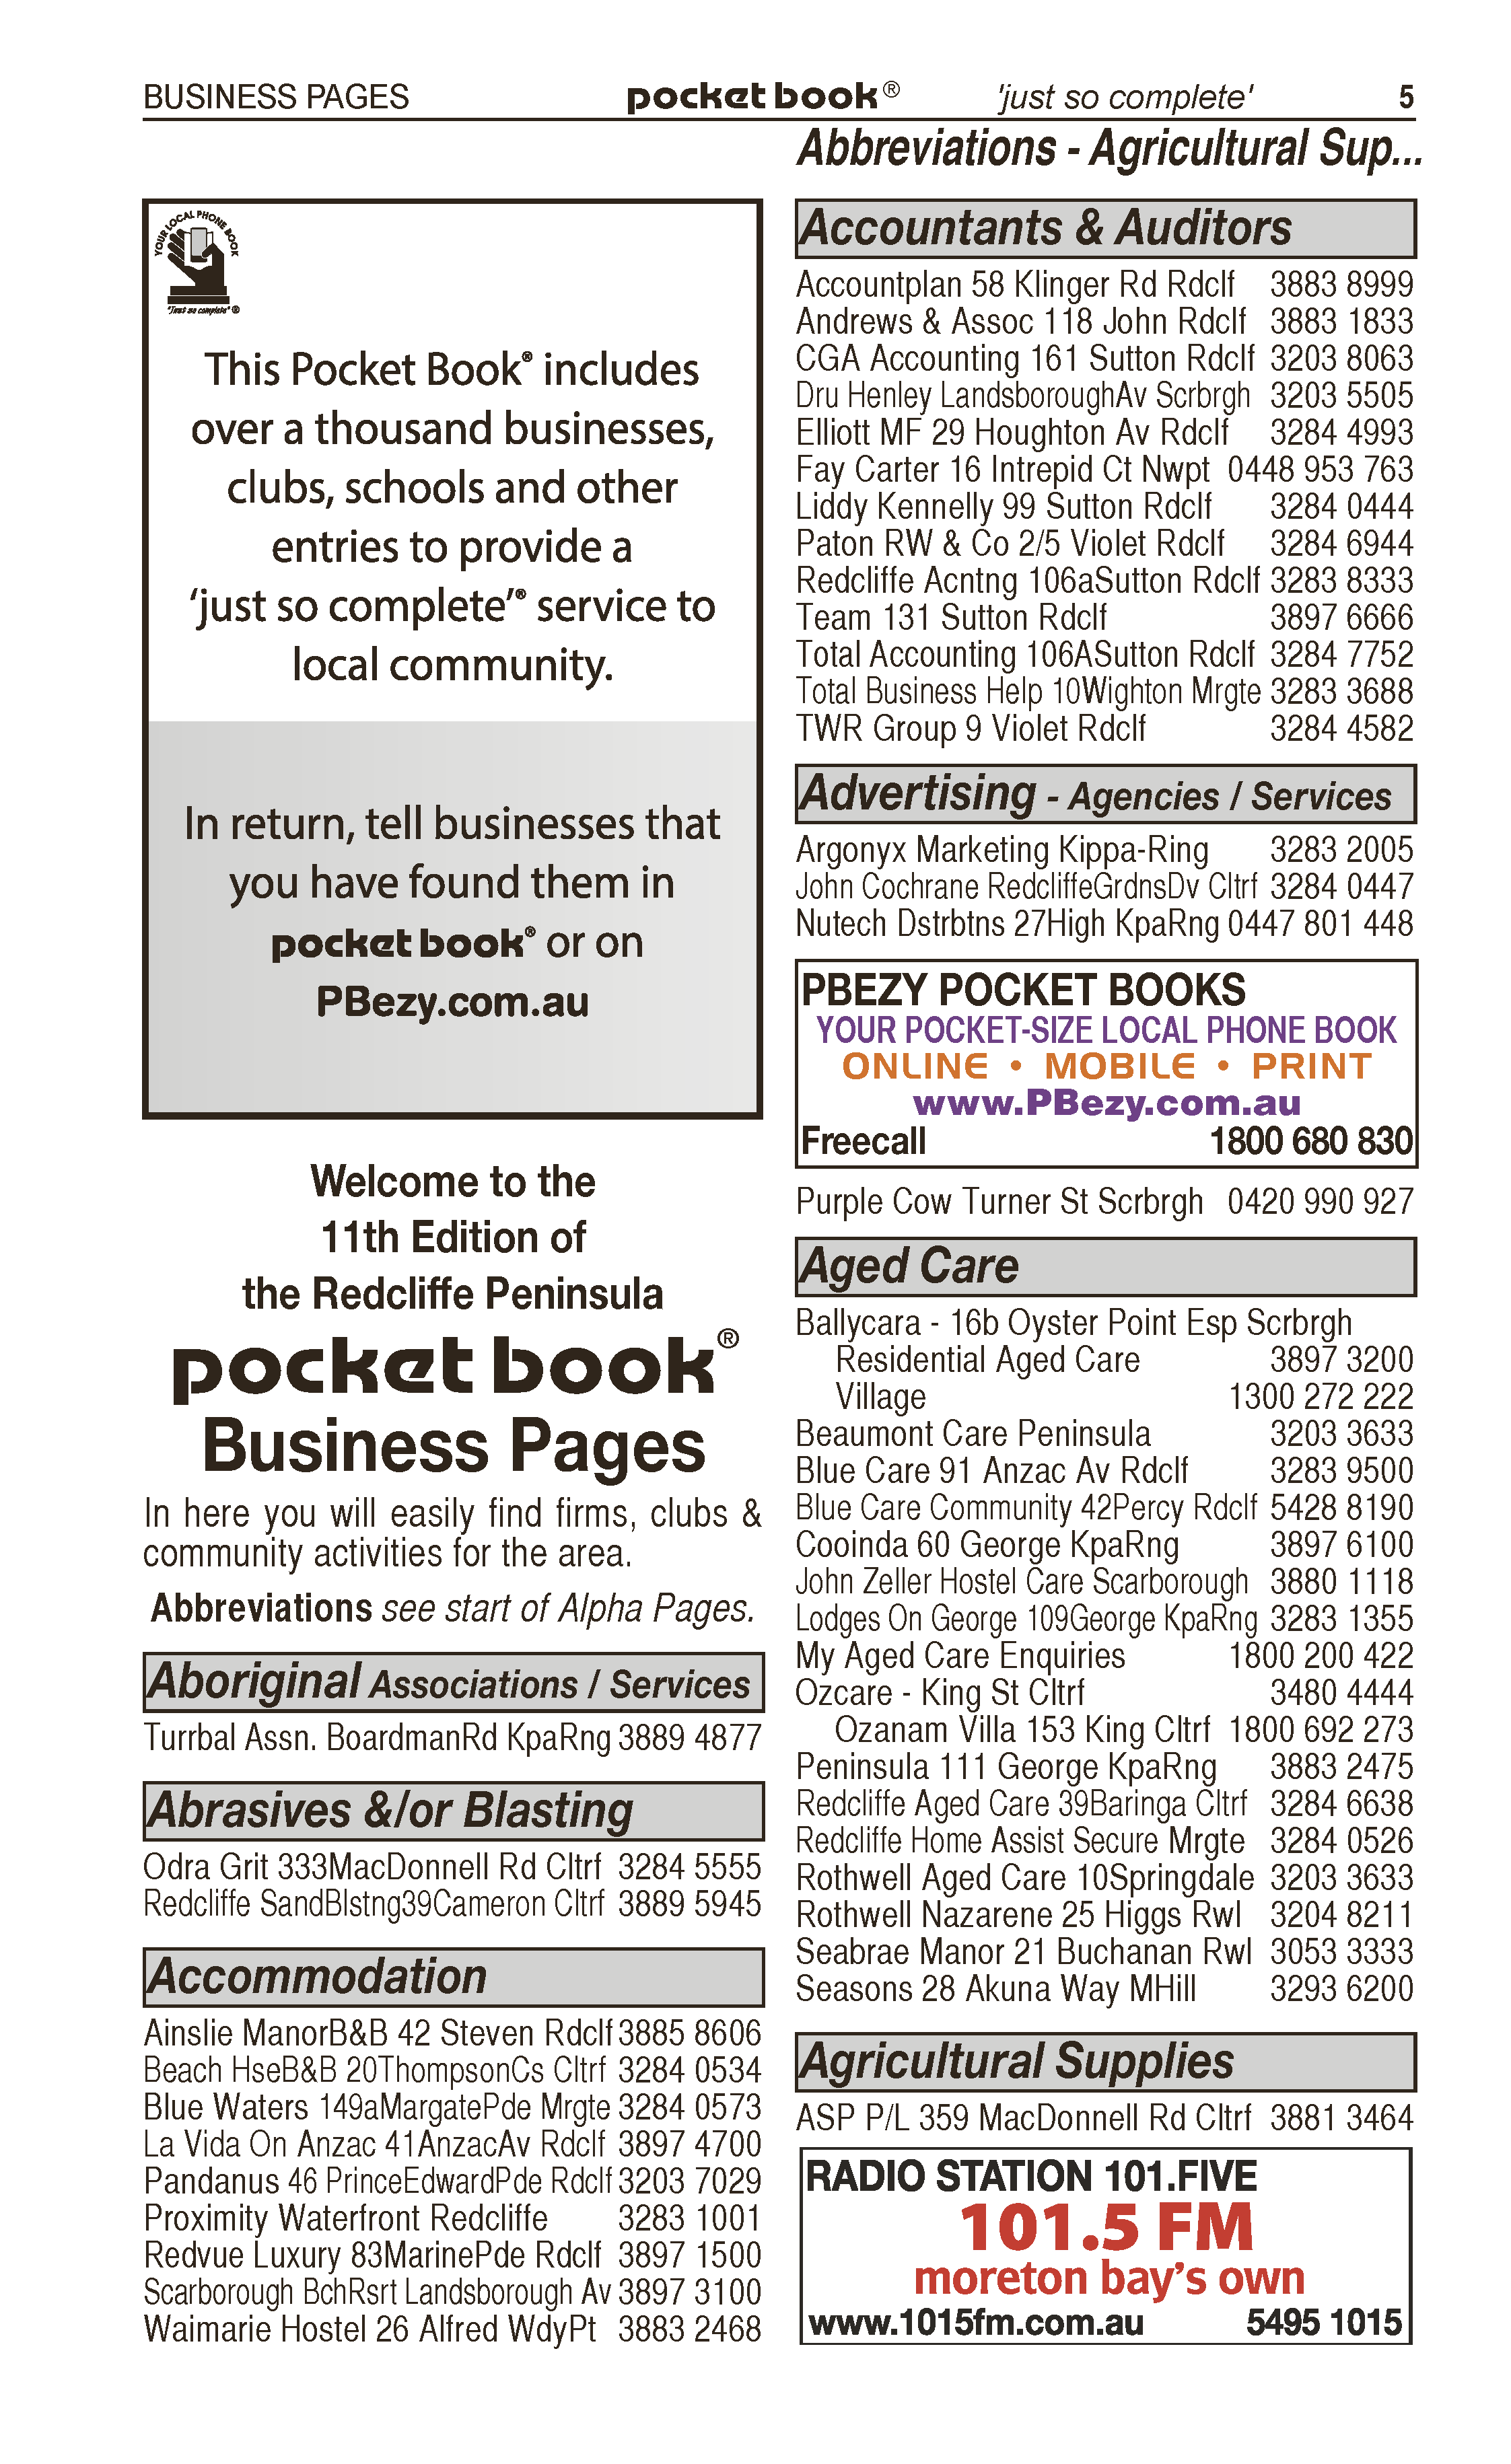 PBezy Pocket Books | Advertising Agencies in Beerwah | PBezy Pocket Books local directories - page 5